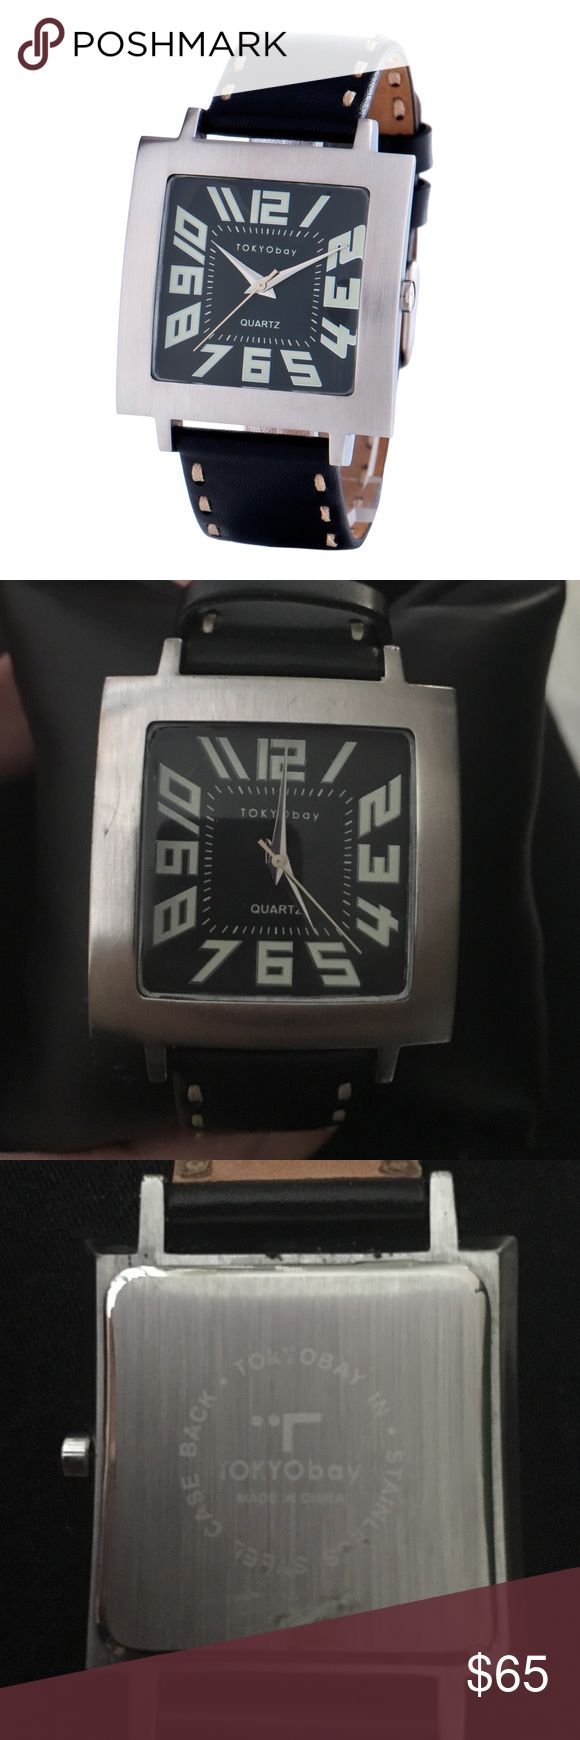 Tokyo Bay Tram Watch BLACK New in Box Tokyo Bay watch . Can be unisex for Men or Women. Comes with extra wristband . Tiny barely noticeable mark/scratch on front border & needs a new battery. Can be replaced for $7-10 . Black Italian leather strap & brushed brass silver finish case. Mineral glass lens. Tokyo Bay Accessories Watches